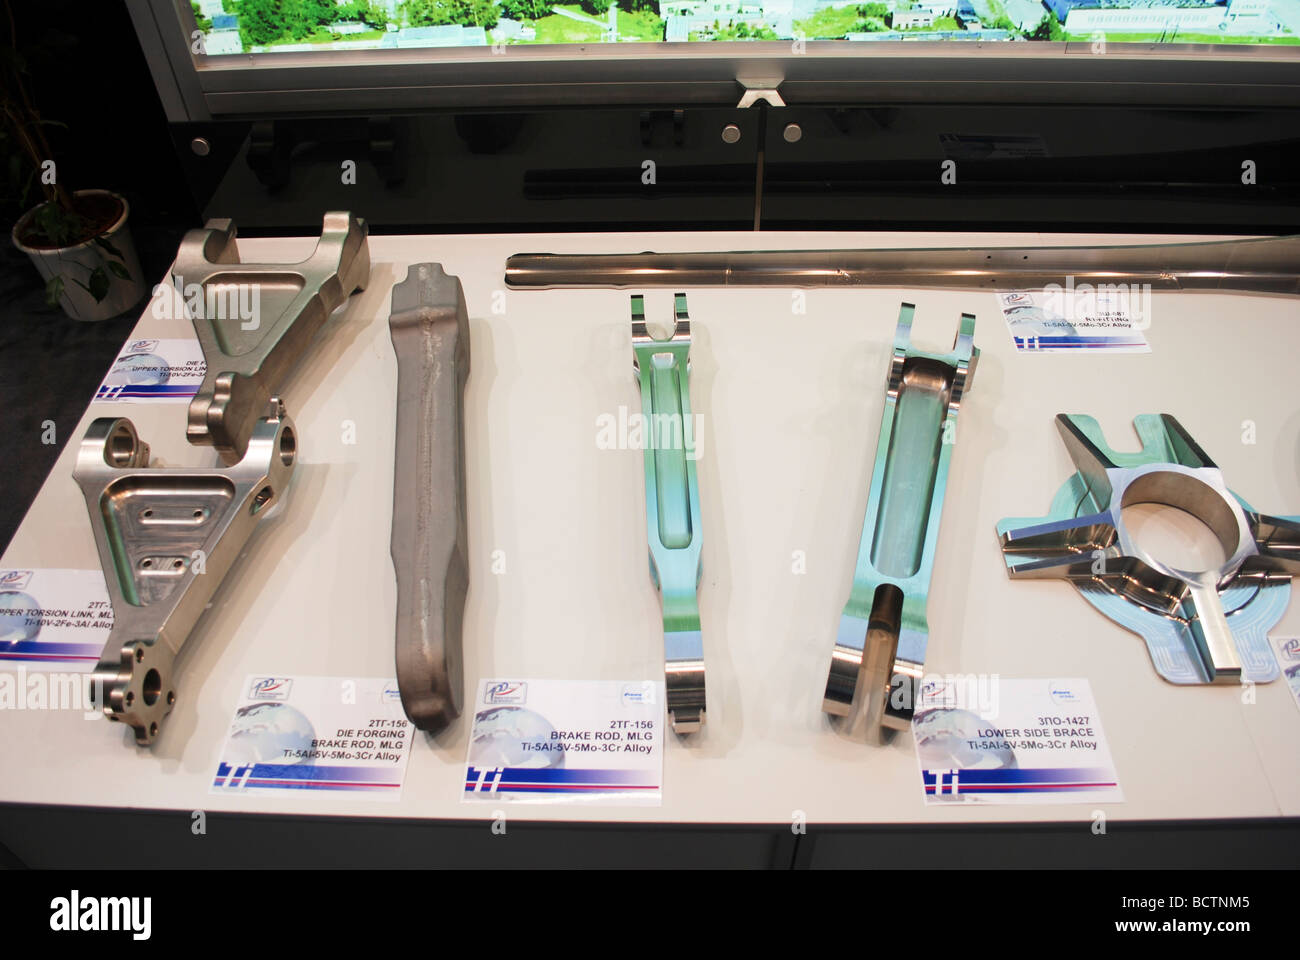 Aviation Quality alloy machined parts on display - Stock Image